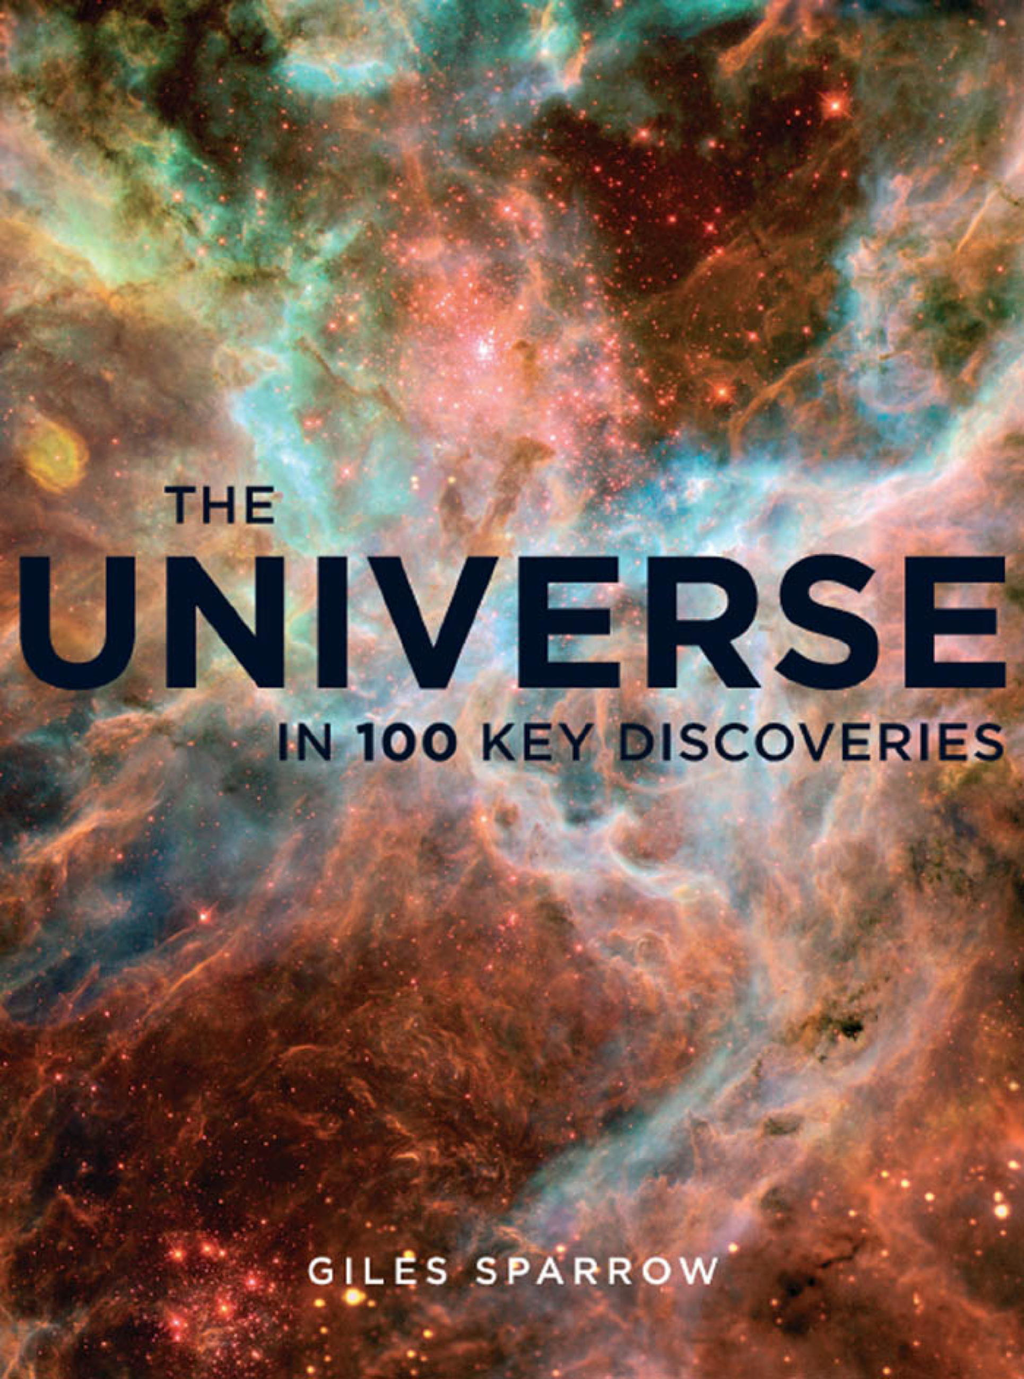 The Universe In 100 Key Discoveries